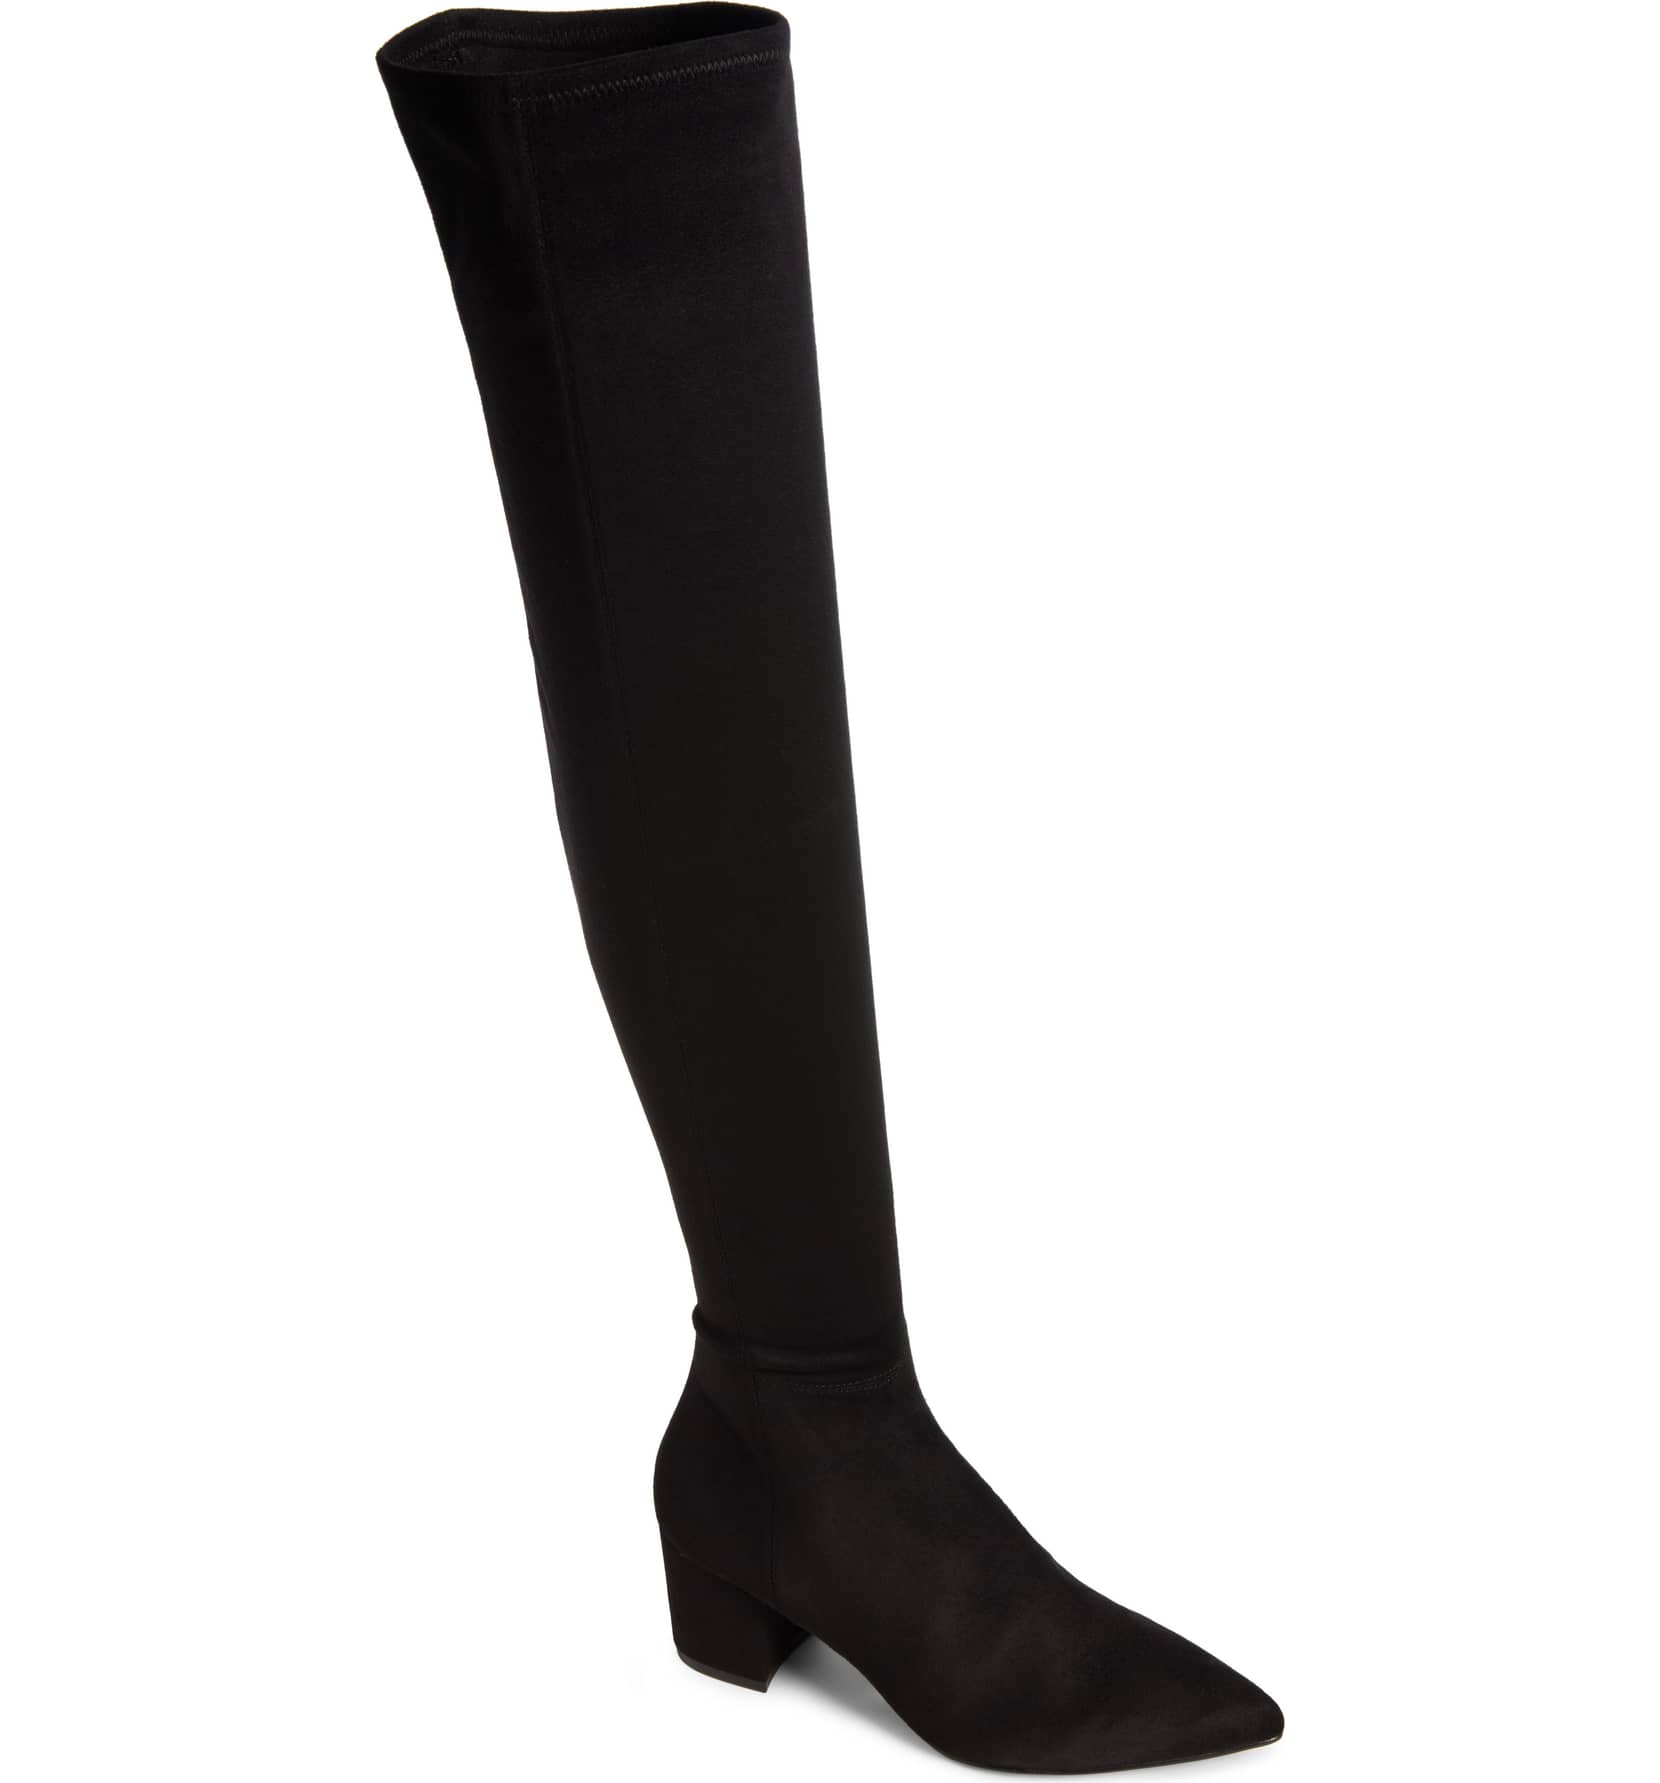 Cute Boots for Fall, Black Suede Over-the-Knee Boots